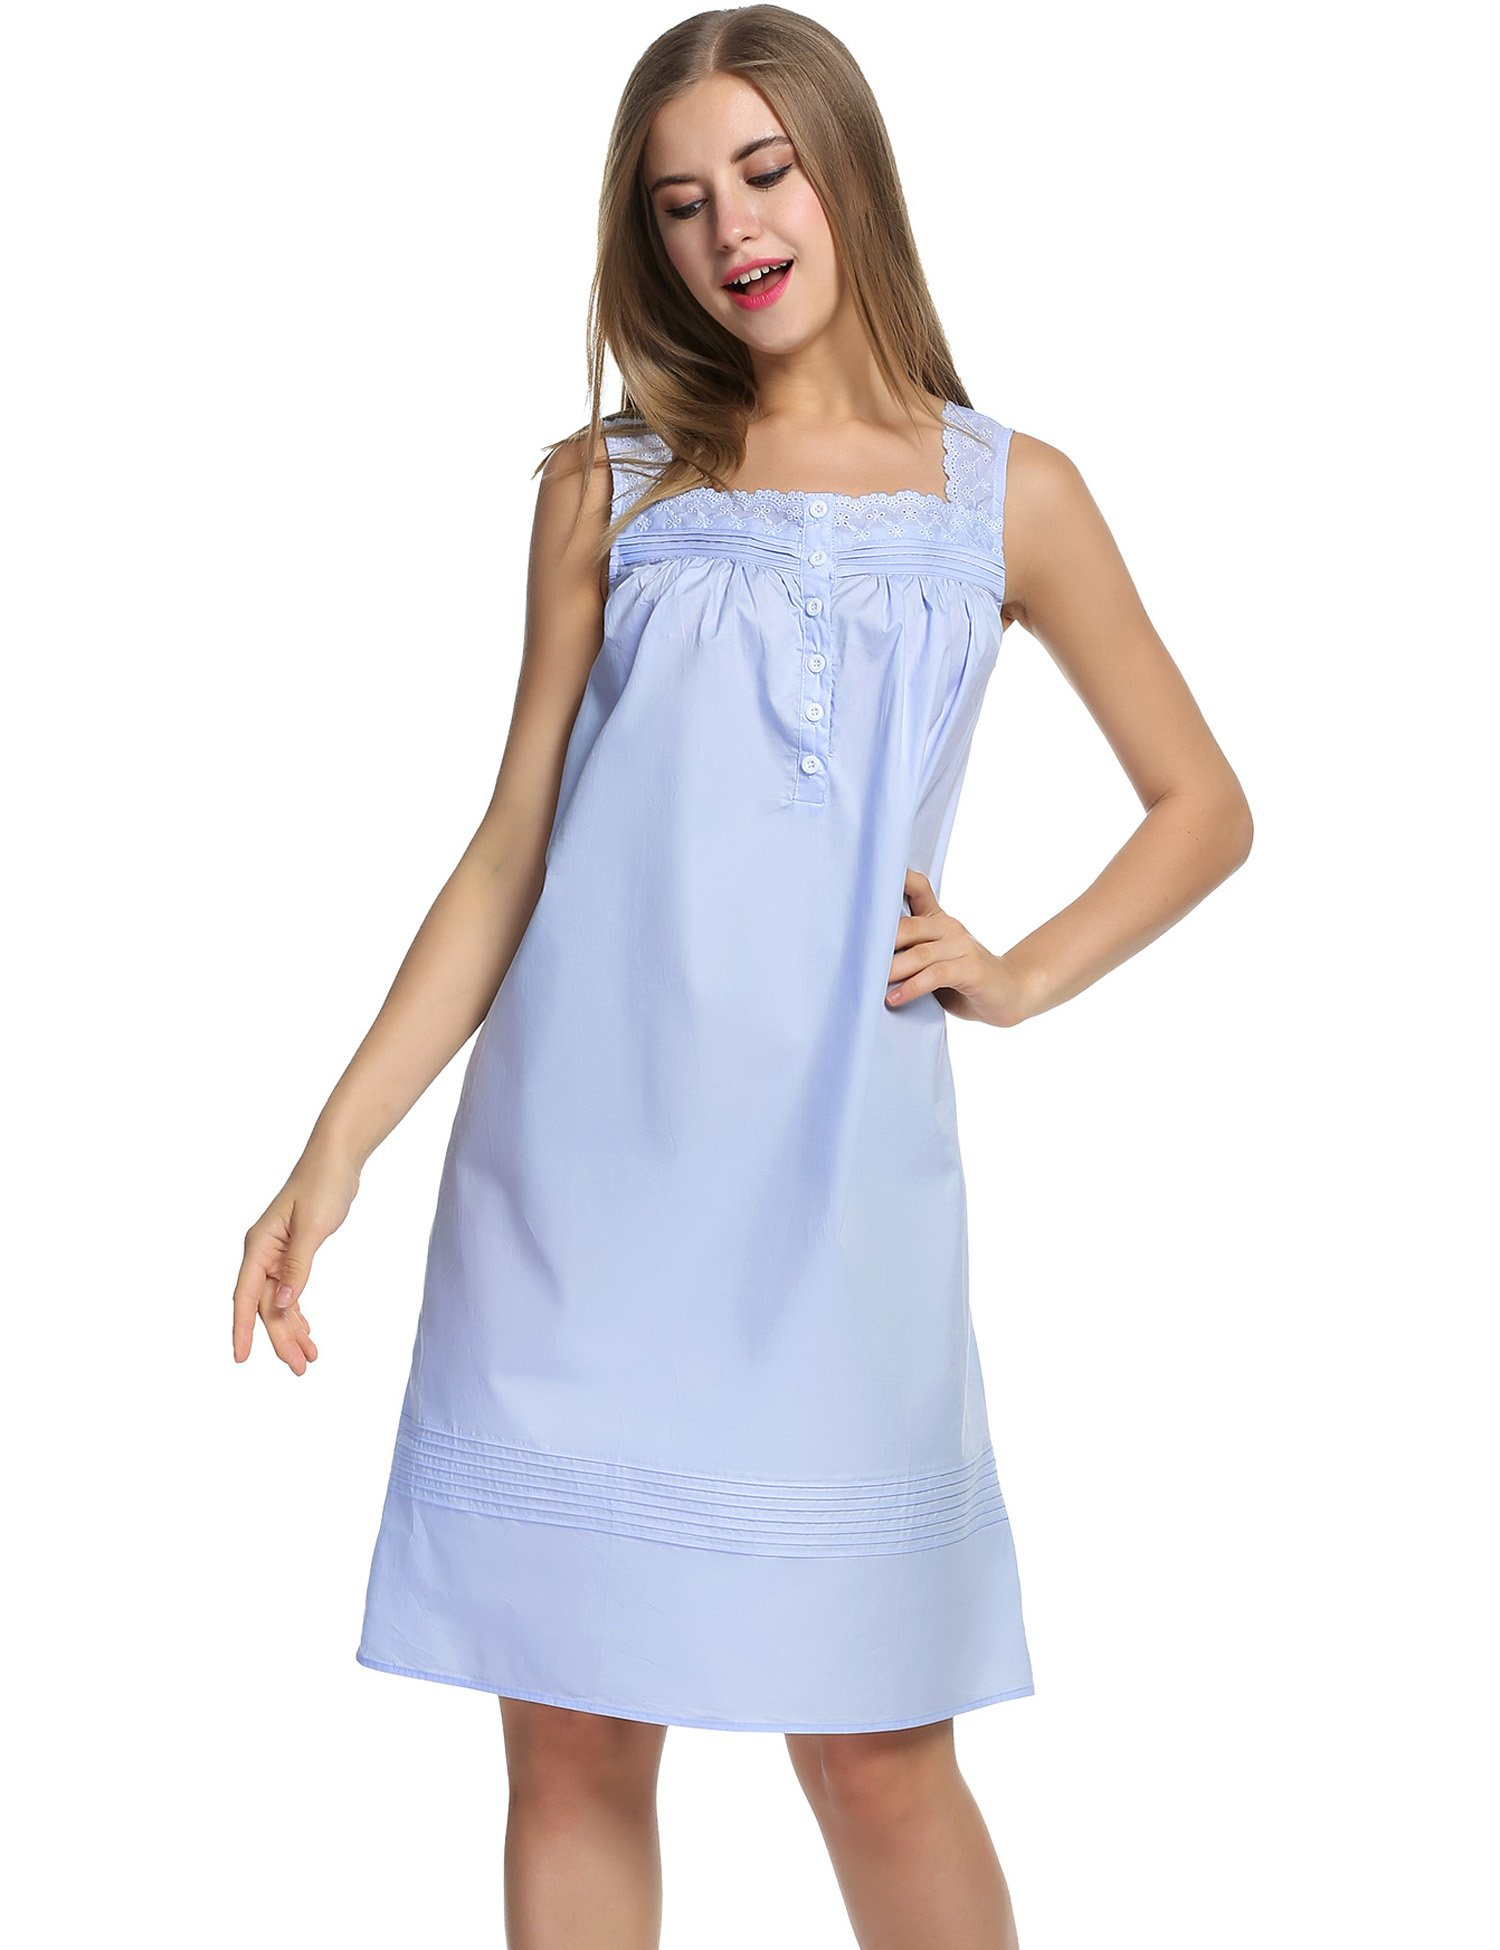 Hotouch Women's Plus-Size Sleep Shirt Lightweight Nightgowns Light Blue L by Hotouch (Image #3)